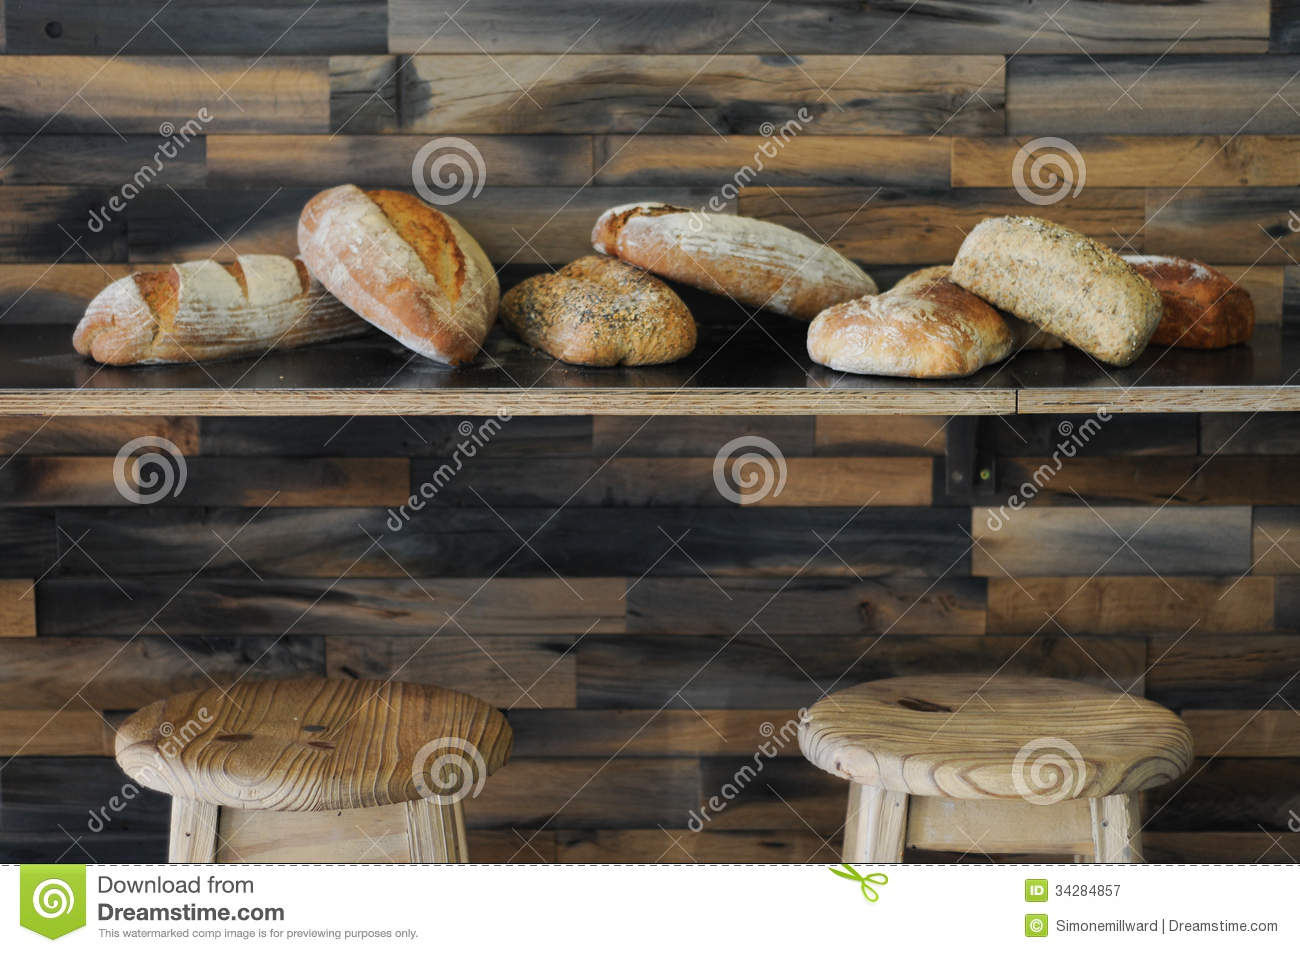 The loaves